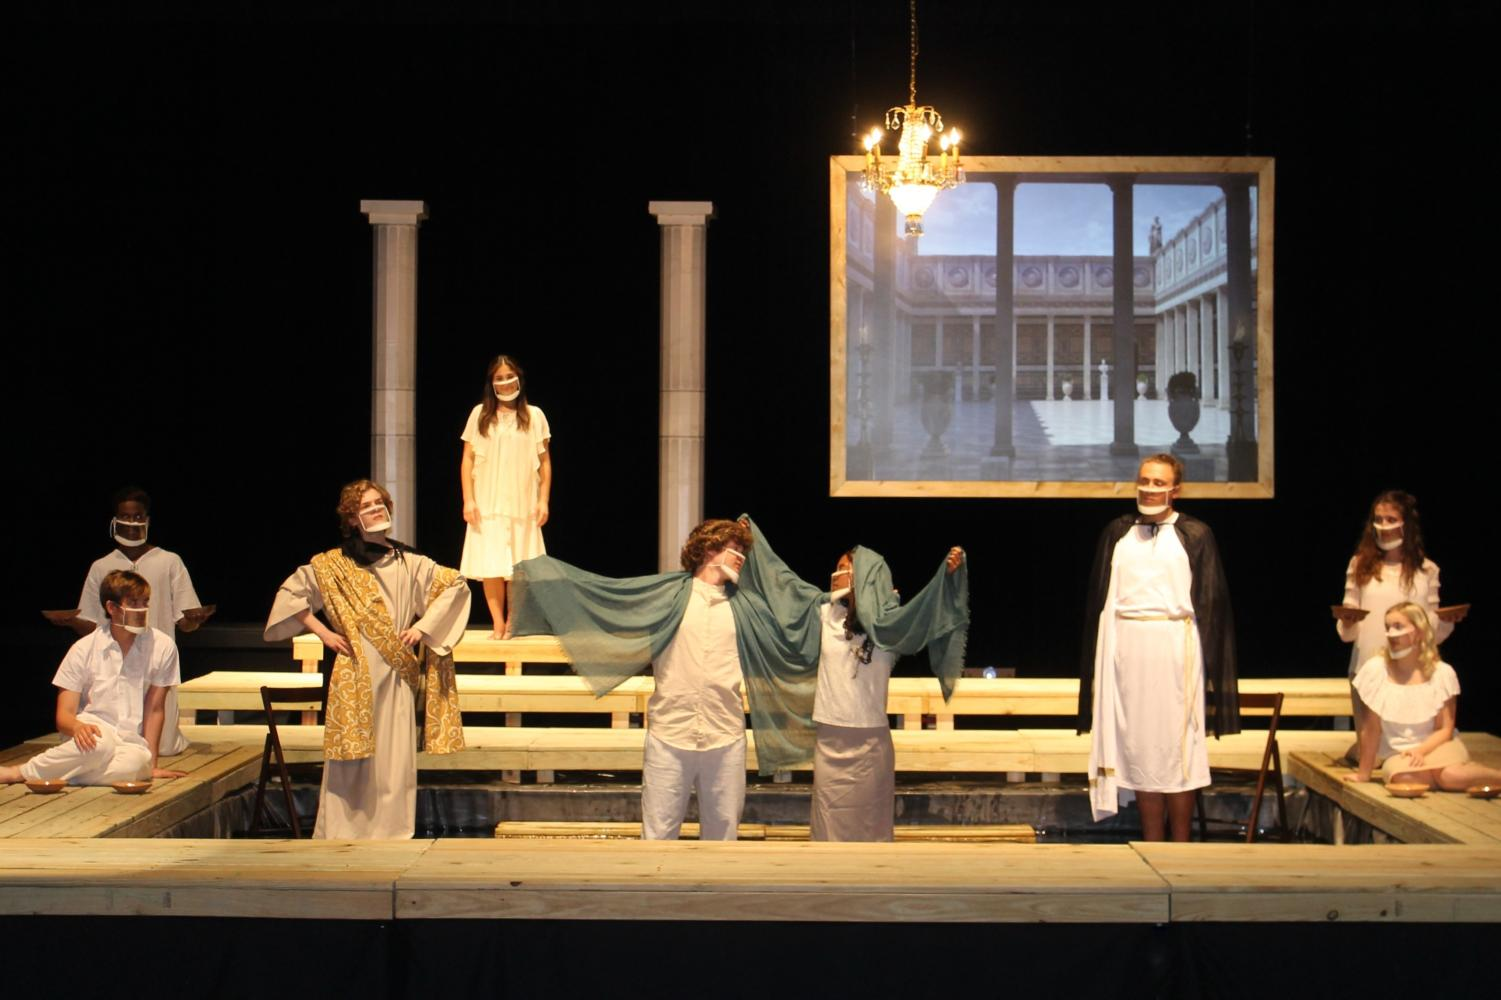 Cast members of Metamorphoses during a performance.